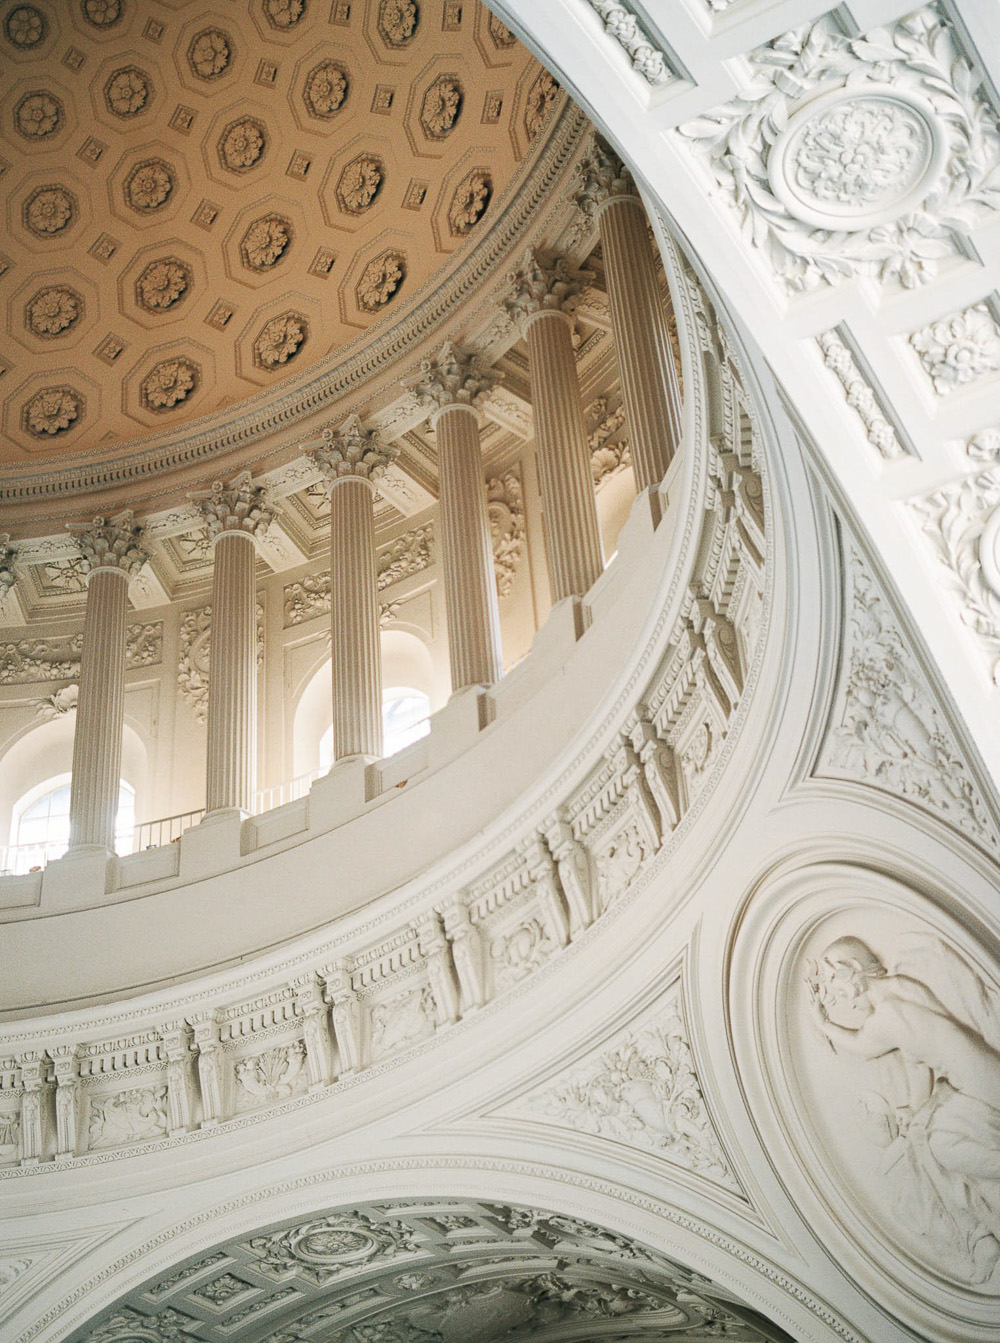 San Francisco city hall interior ceremony decor California Wedding Photographer Lara Lam